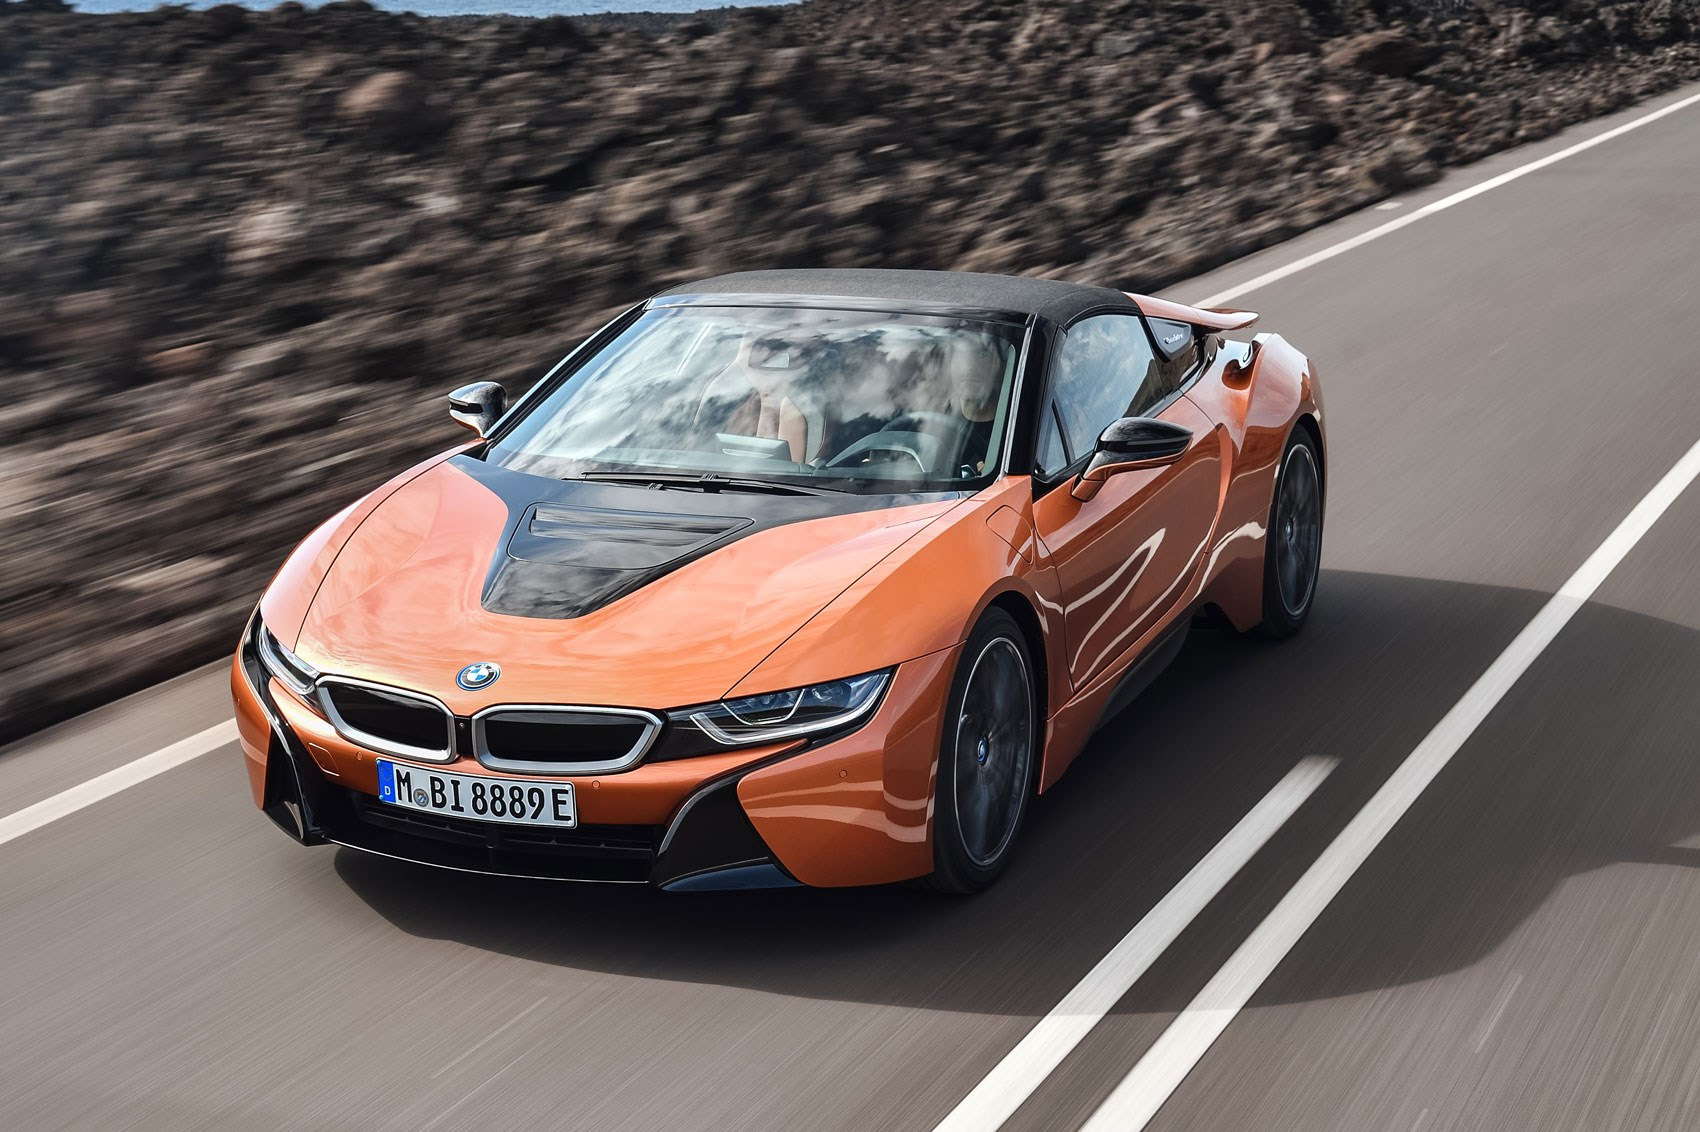 soft top super hybrid 2018 bmw i8 roadster revealed by car magazine. Black Bedroom Furniture Sets. Home Design Ideas